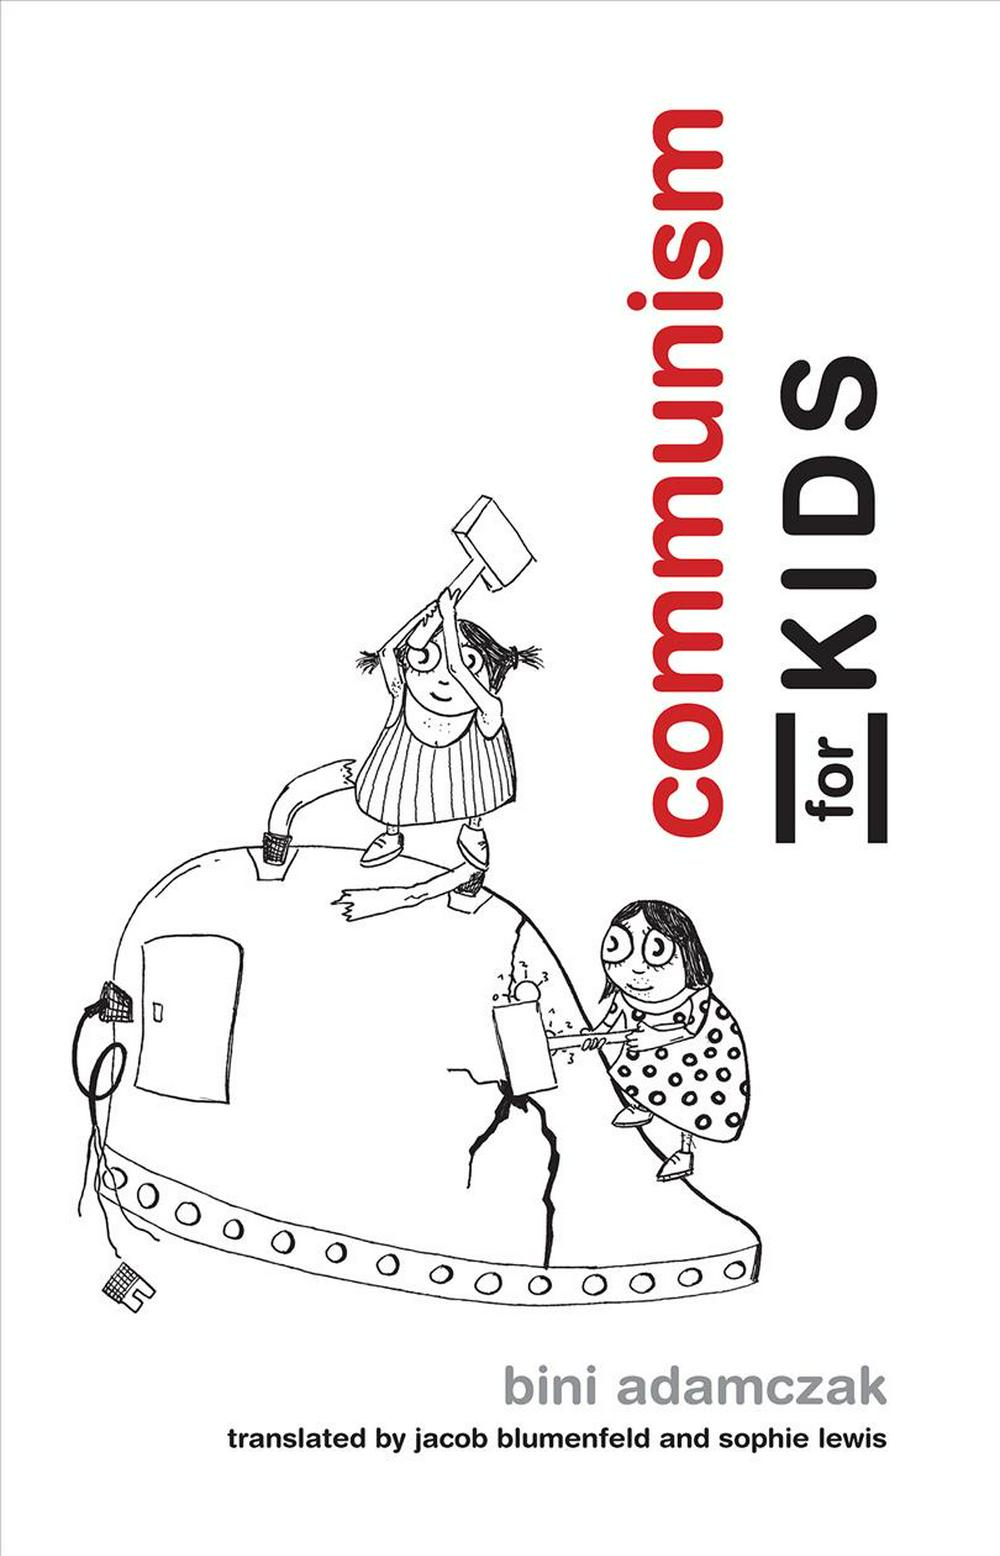 Communism for Kids by Bini Adamczak,Jacob Blumenfeld,Sophie Lewis, ISBN: 9780262533355